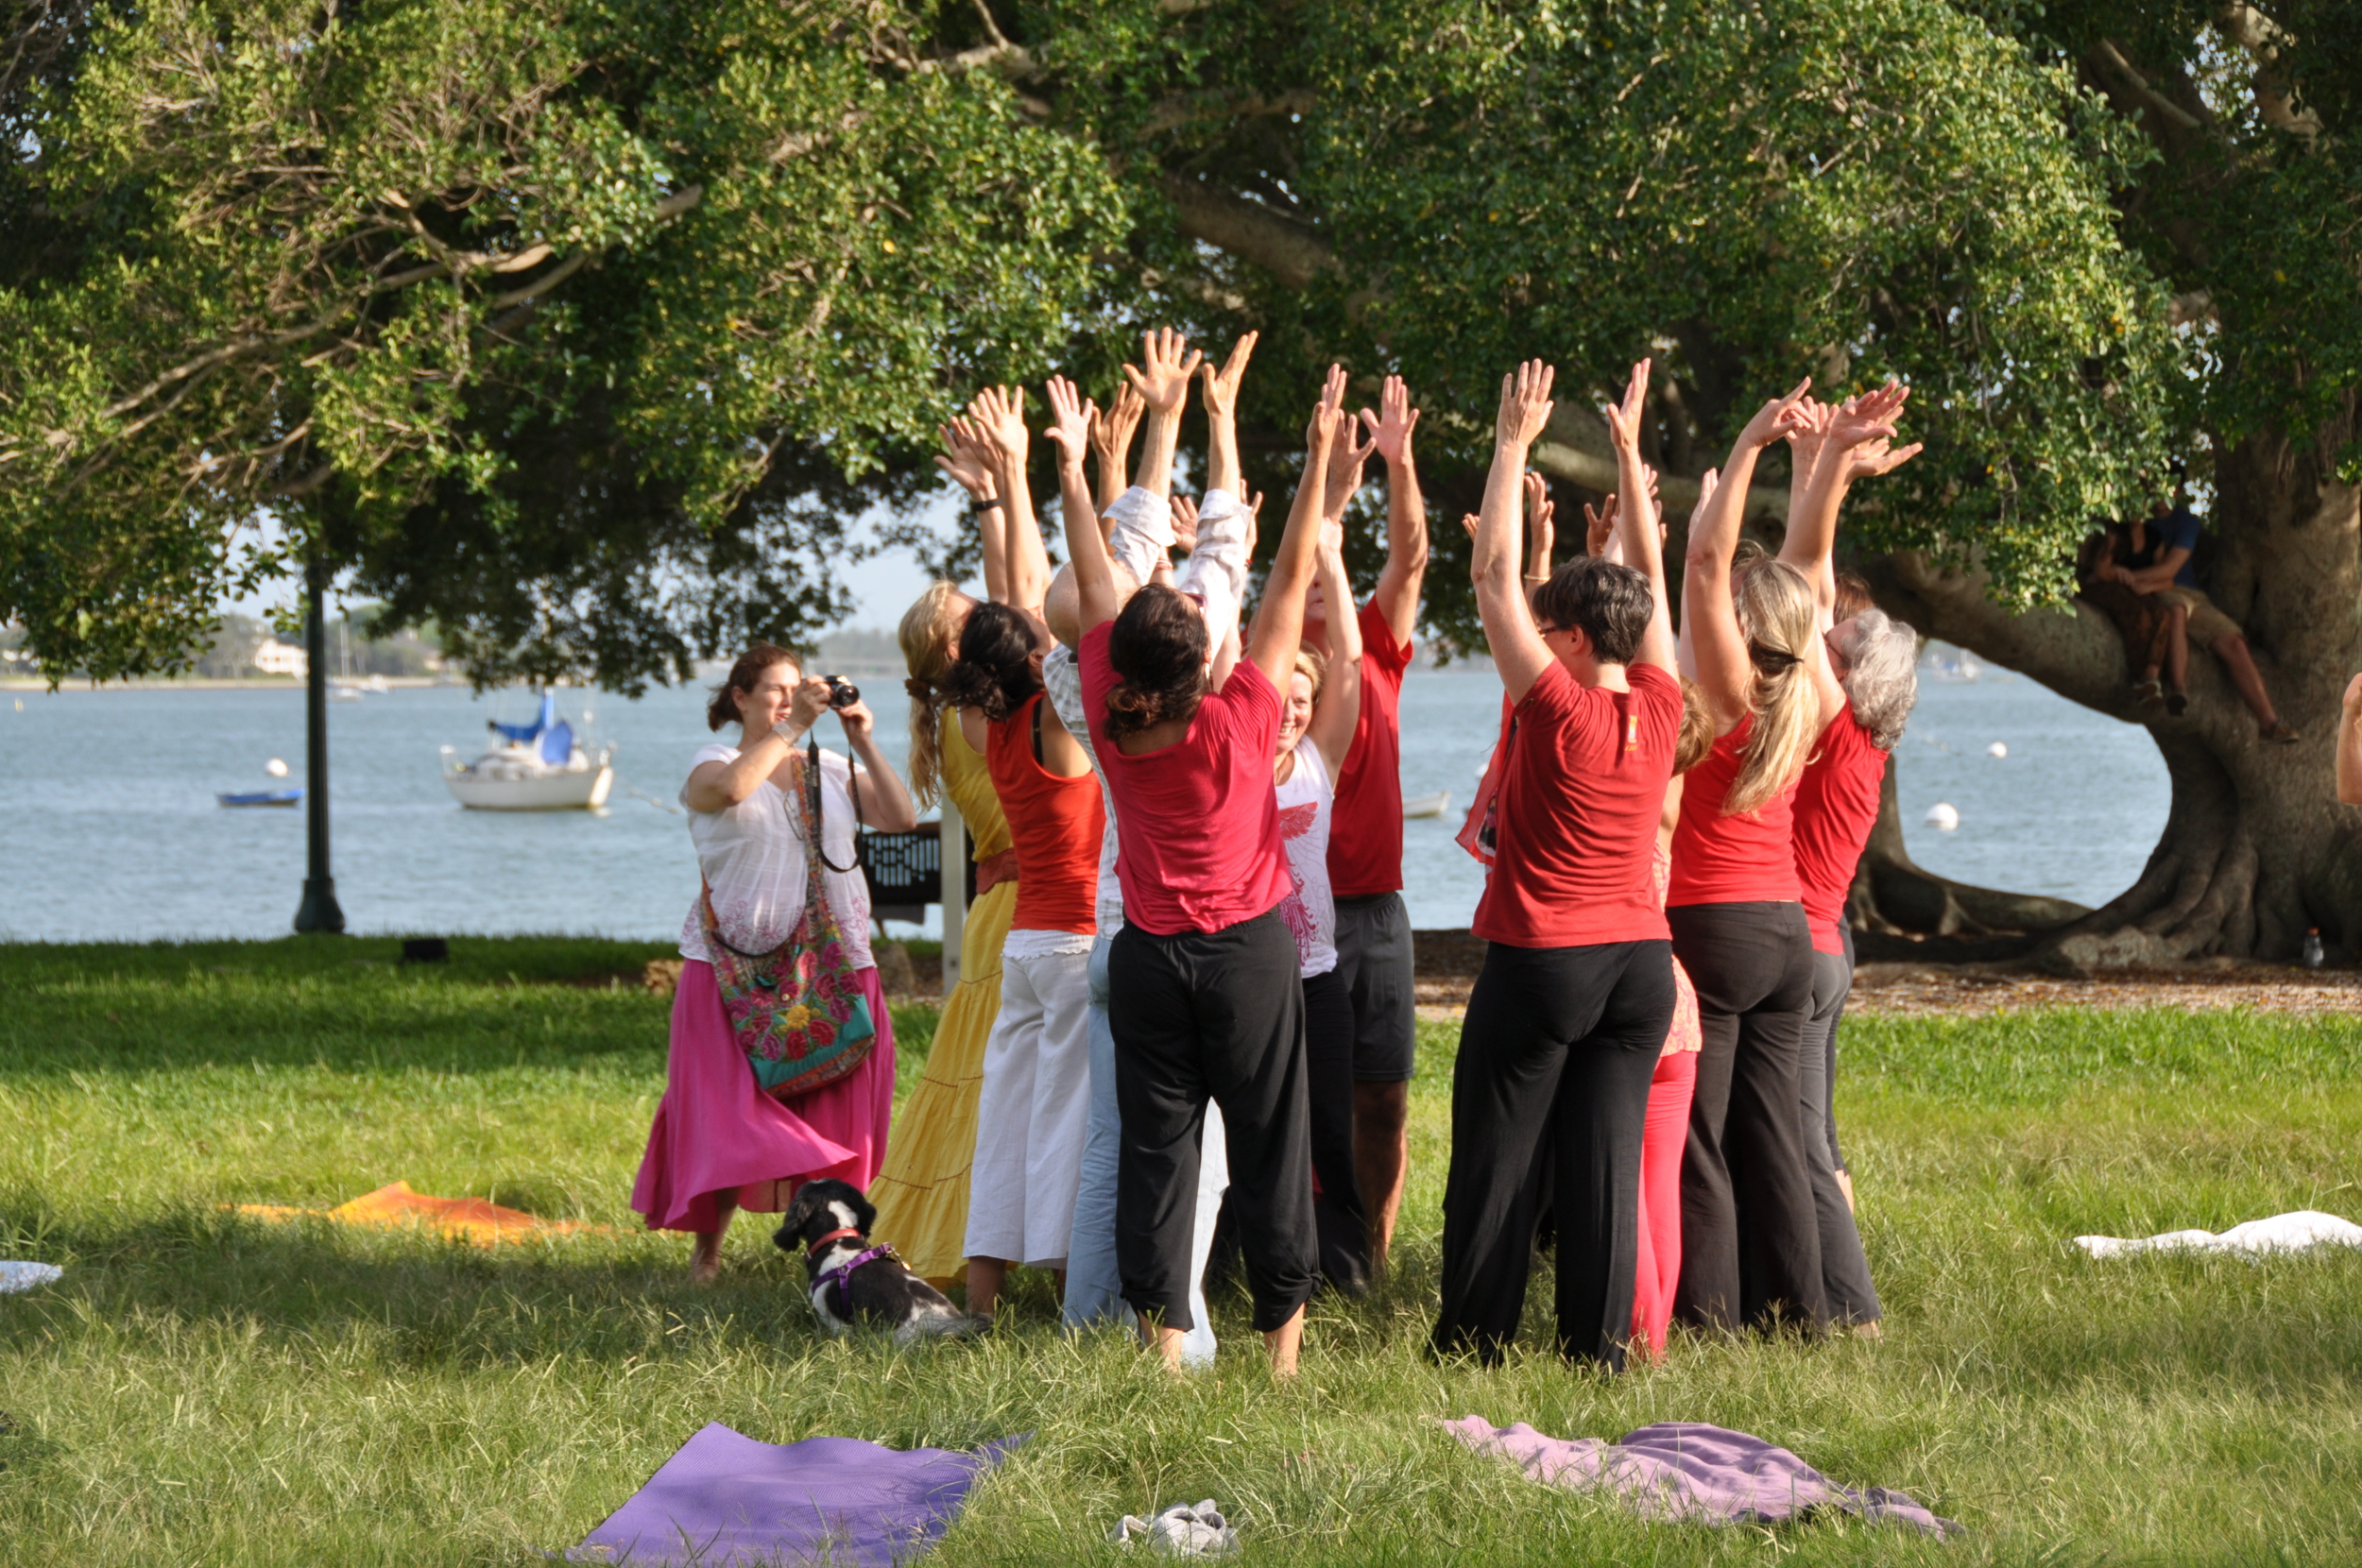 Dancing River of Gratitude videoing done outside in Sarasota Florida at Bayfront Park